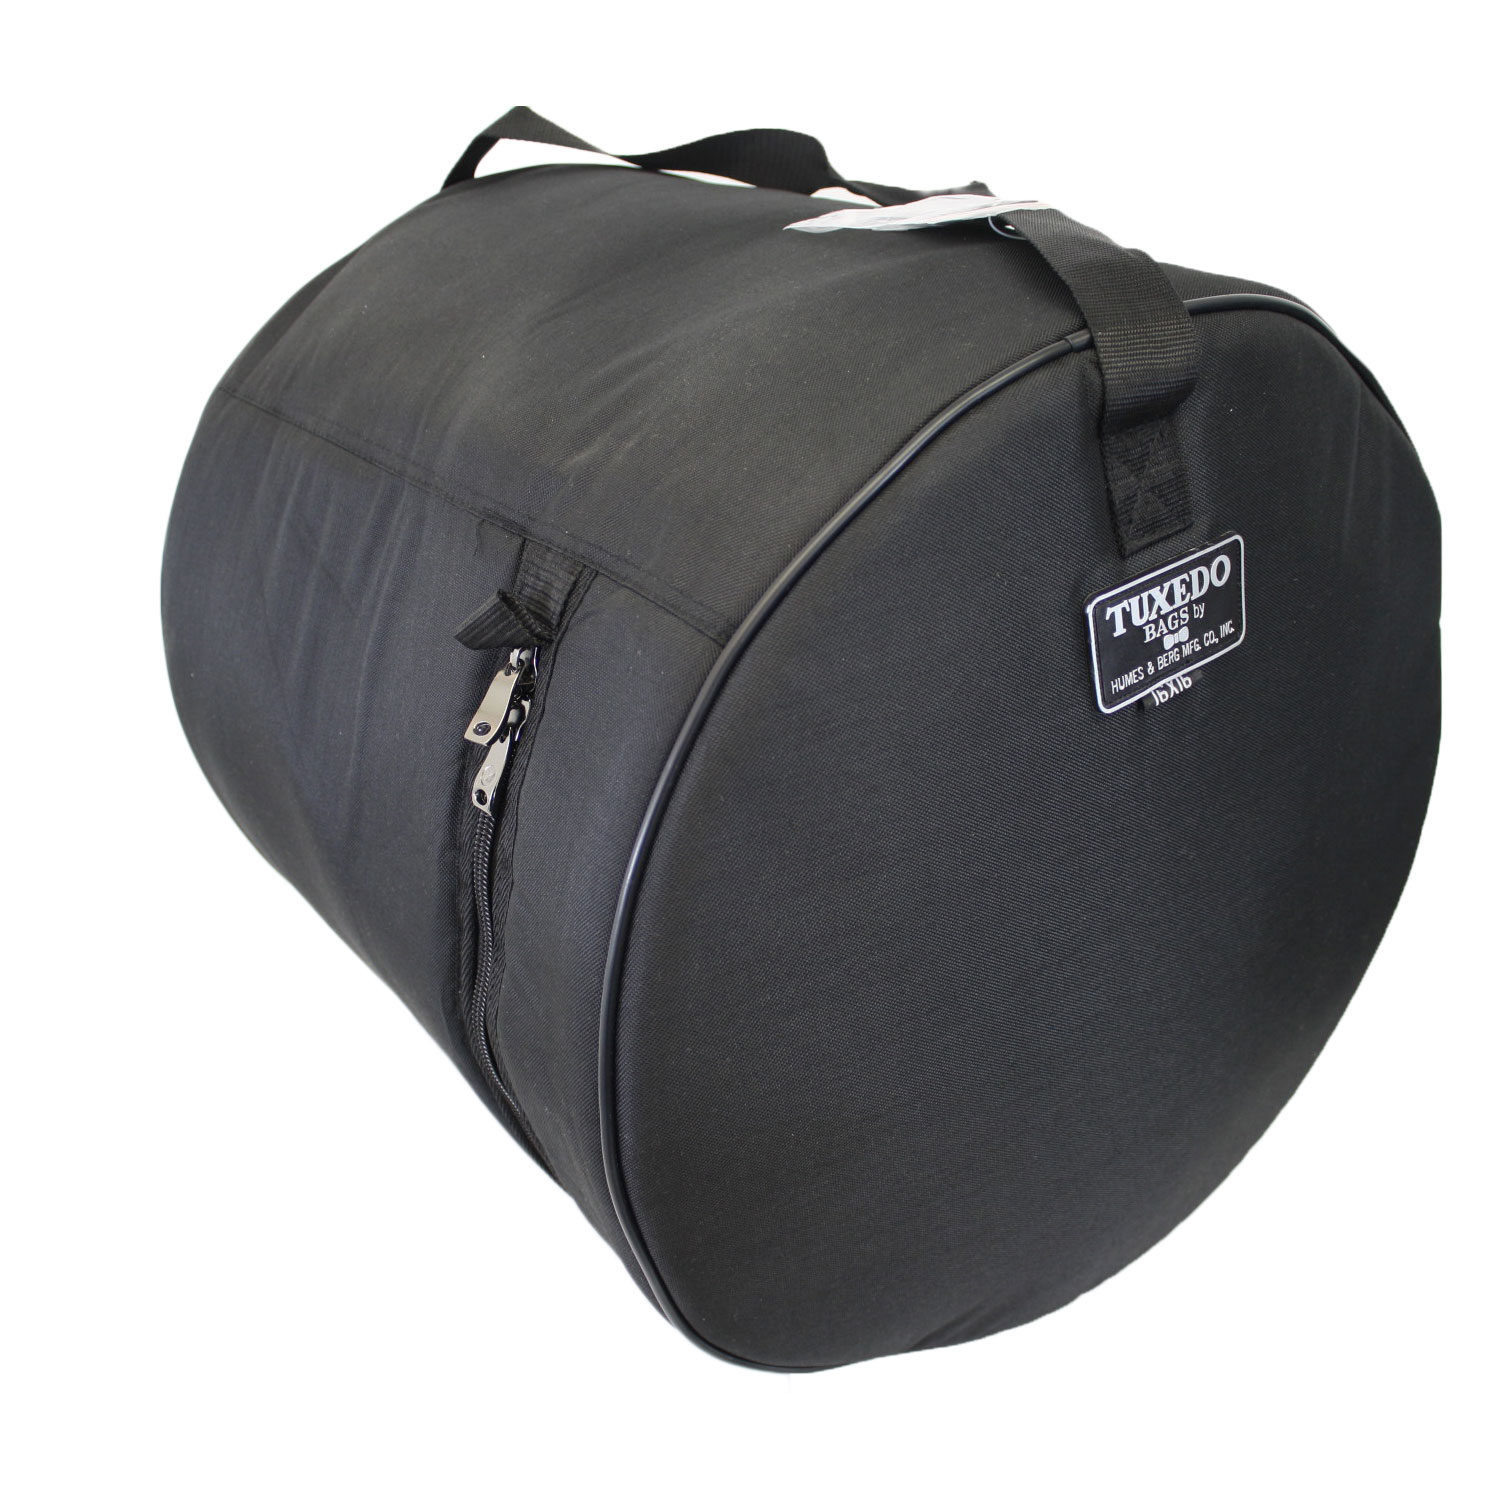 "Humes & Berg 8"" (Deep) x 12"" (Diameter) Tuxedo Tom Bag/Soft Case"